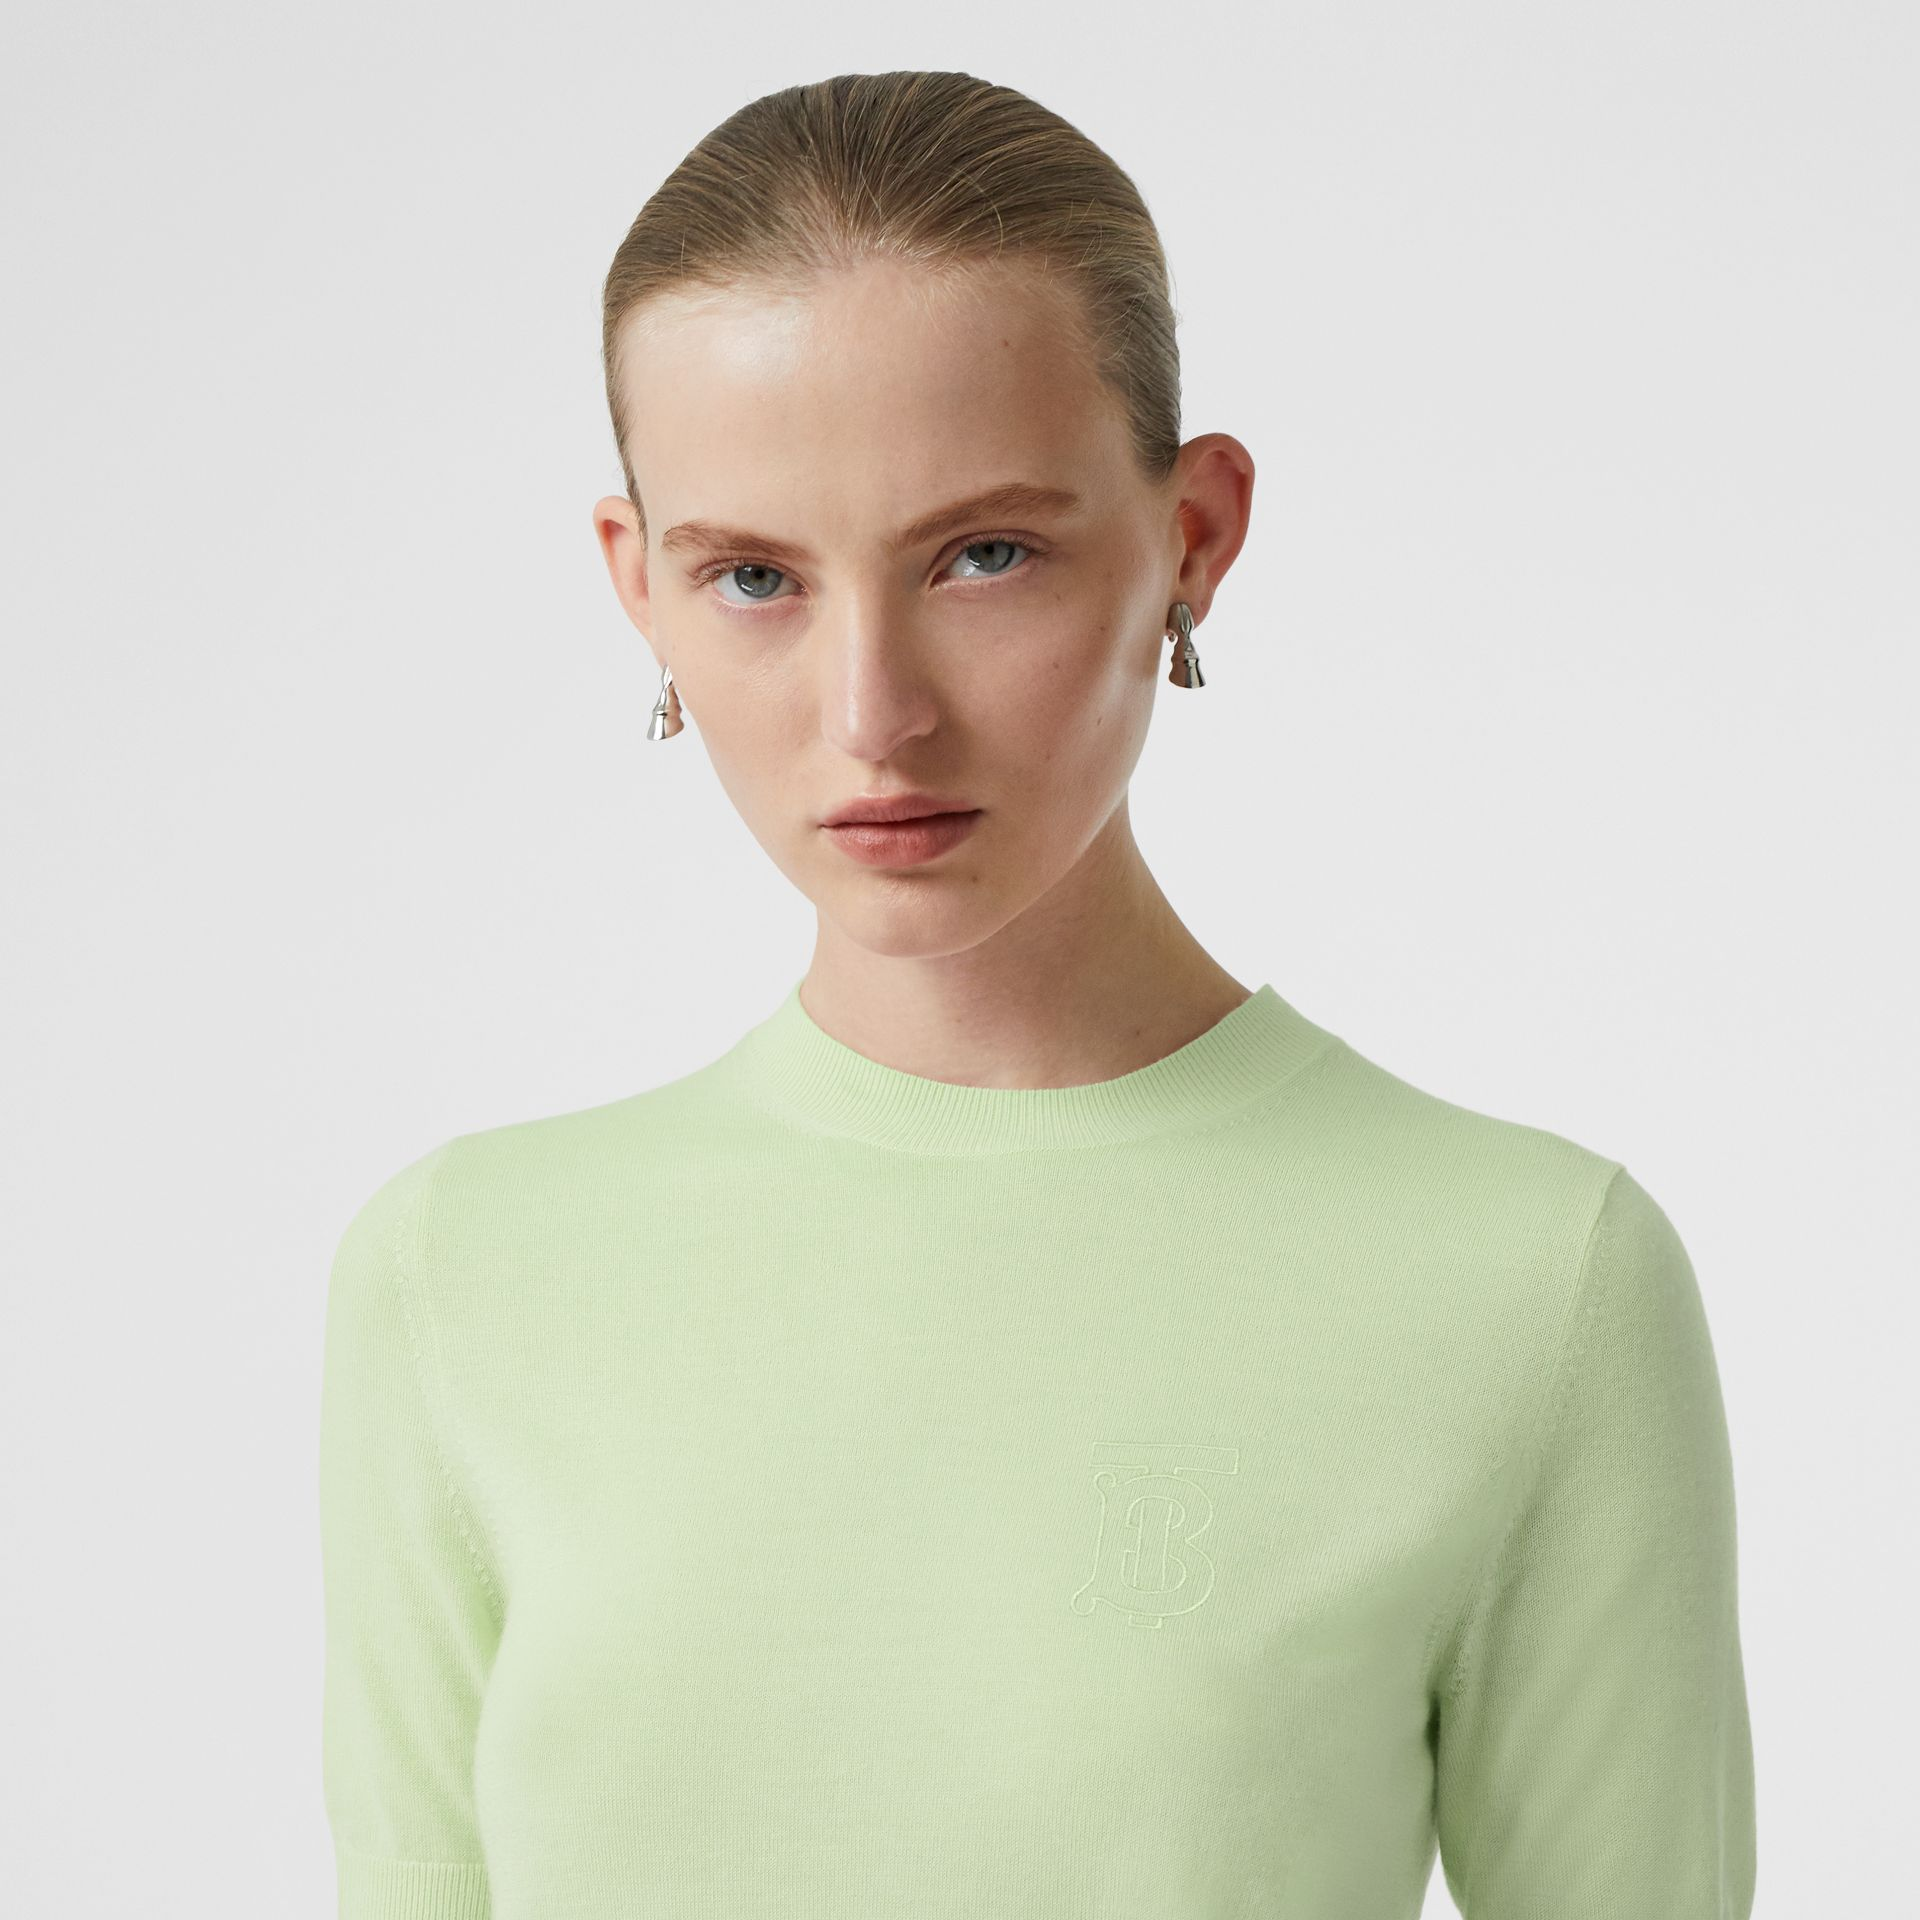 Monogram Motif Cashmere Top in Pistachio - Women | Burberry Singapore - gallery image 1